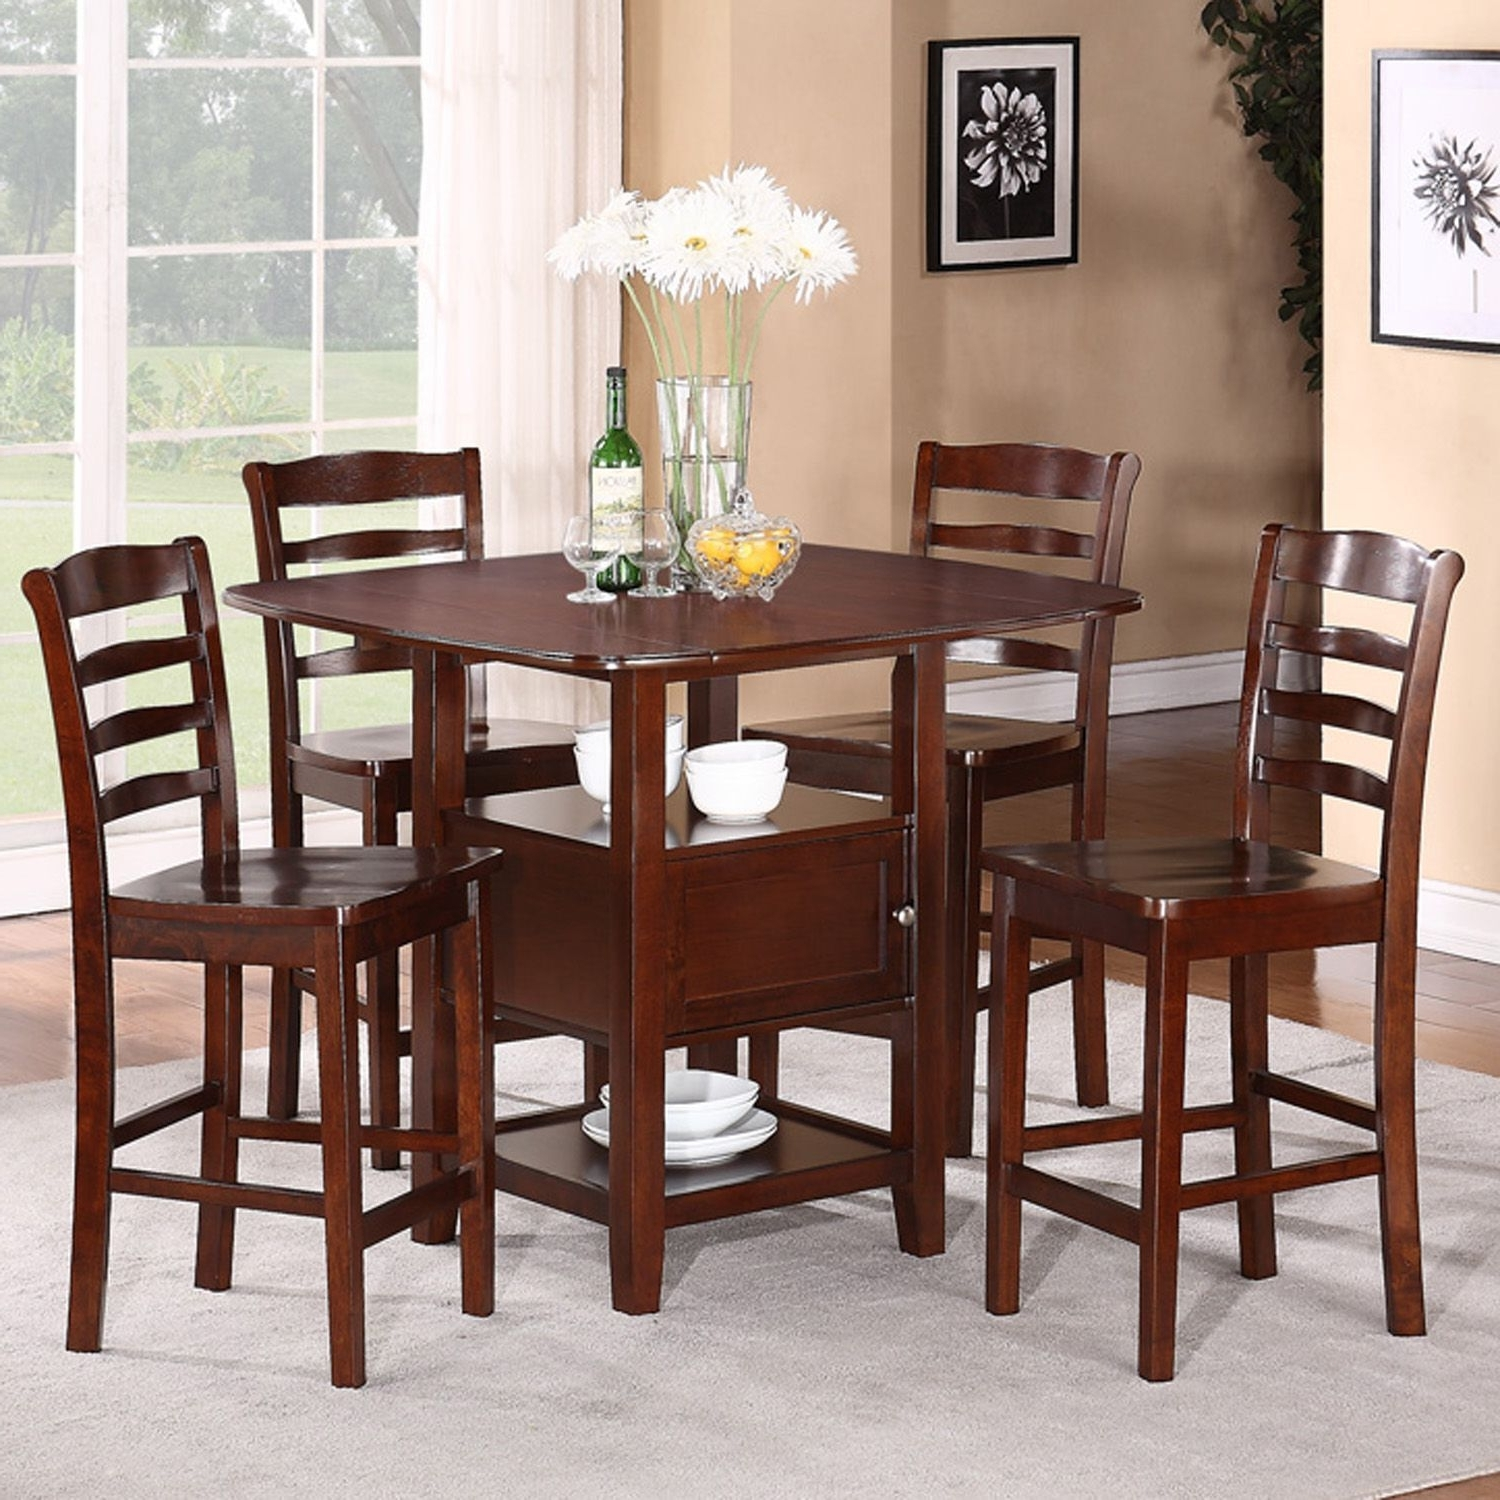 Most Up To Date Some Tips For Dinner Table Set – Pickndecor With Craftsman 5 Piece Round Dining Sets With Side Chairs (View 4 of 25)